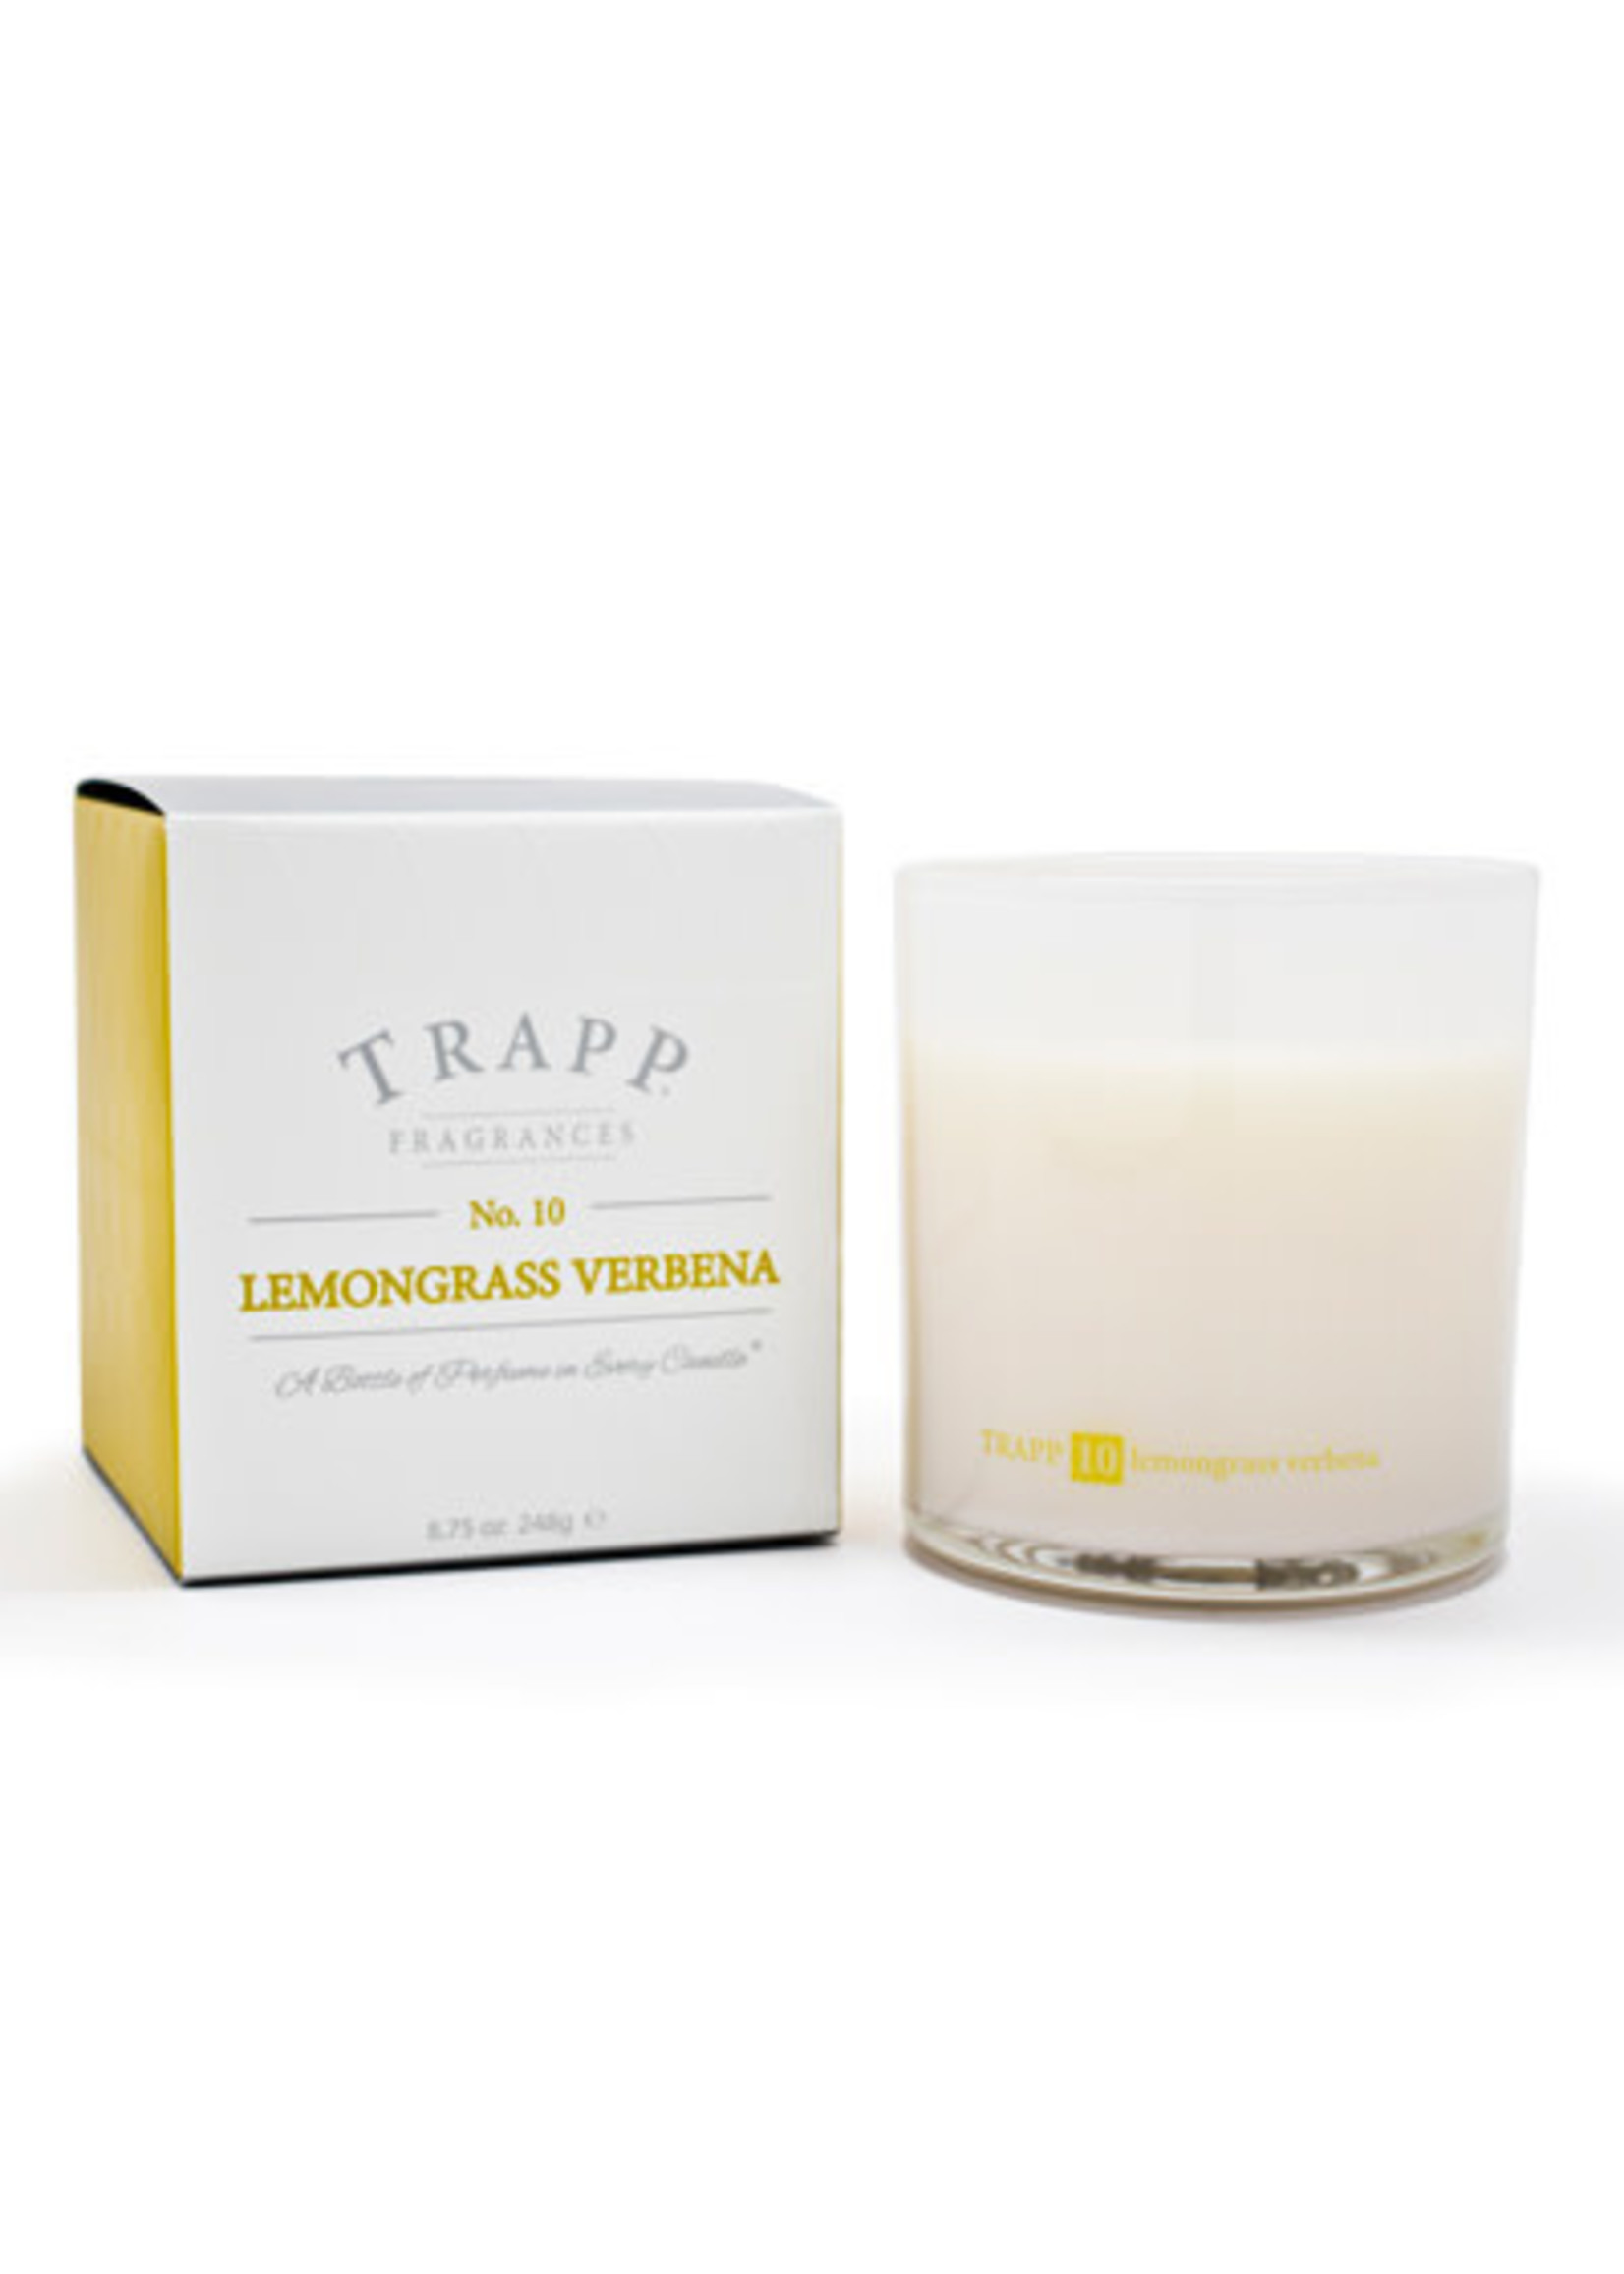 Trapp Candles Ambiance Collection - No. 10 Lemongrass Verbena - 8.75 oz. Poured Candle